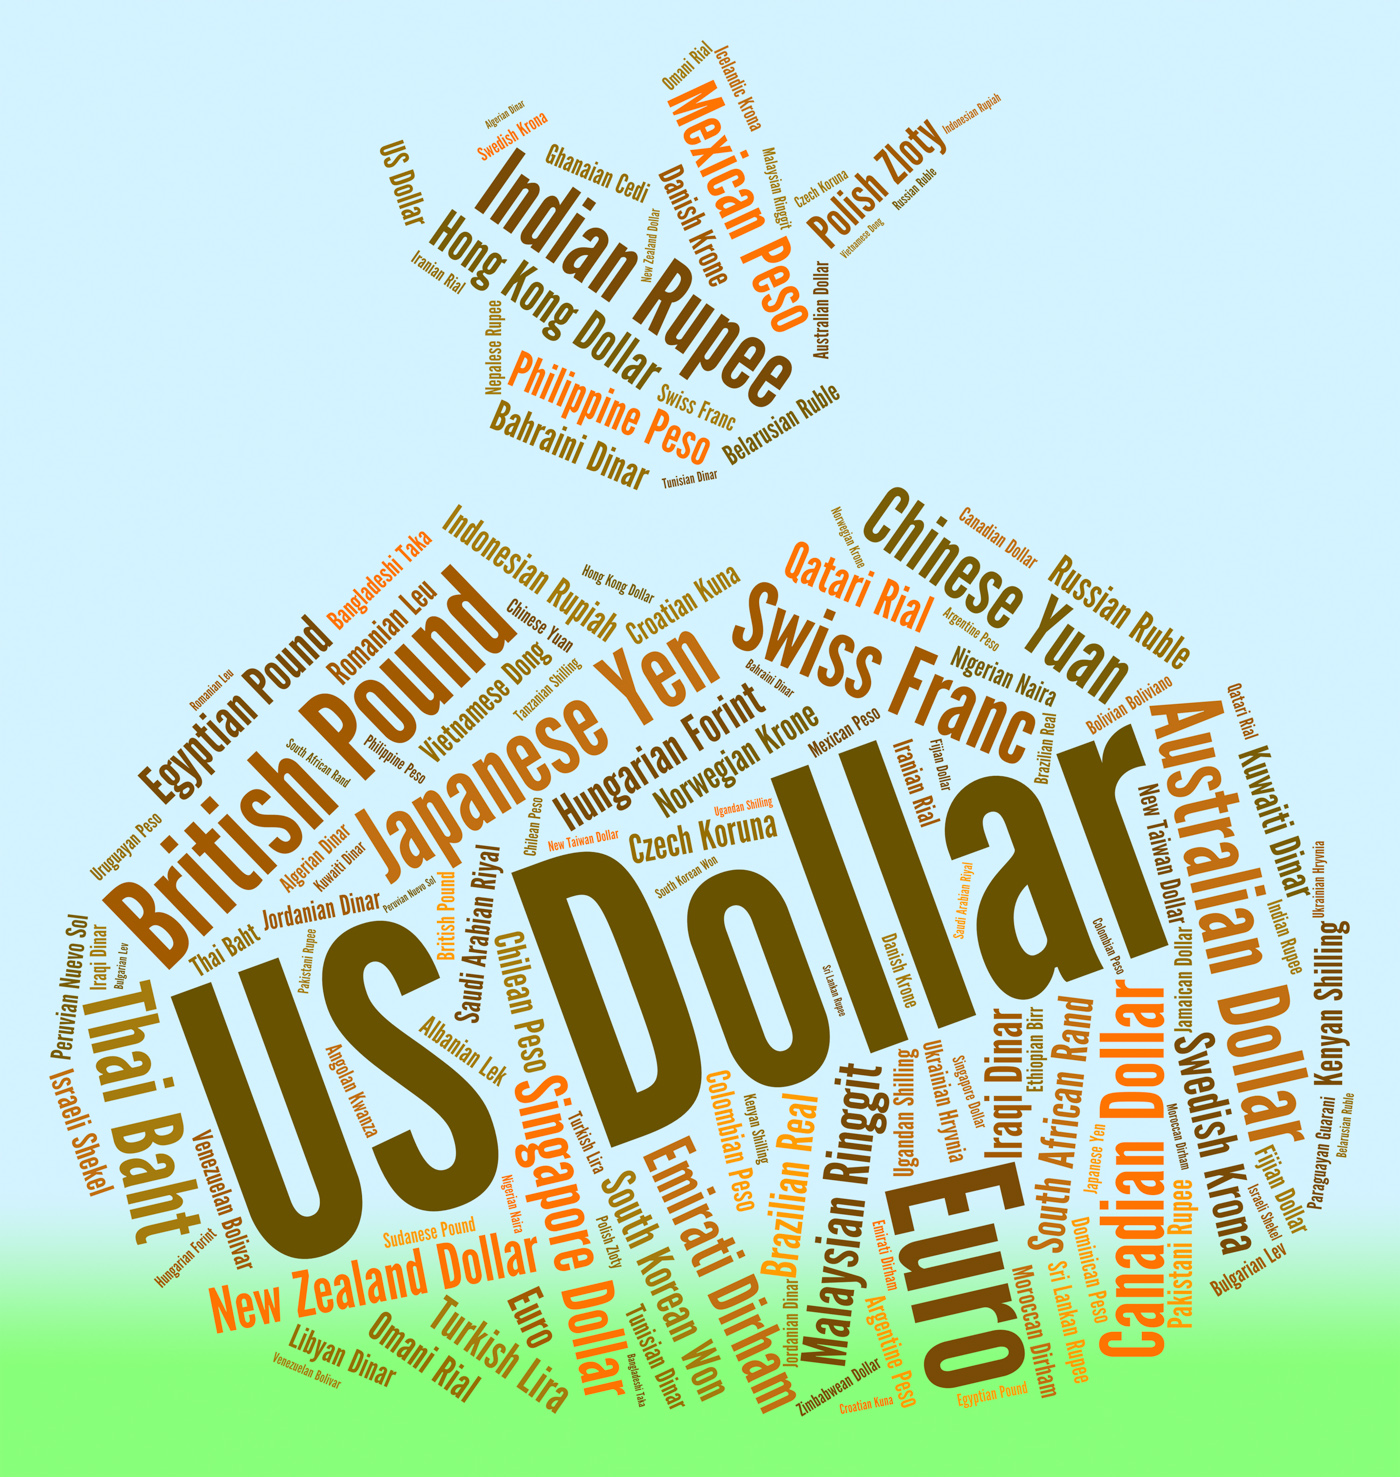 Us dollar shows forex trading and america photo